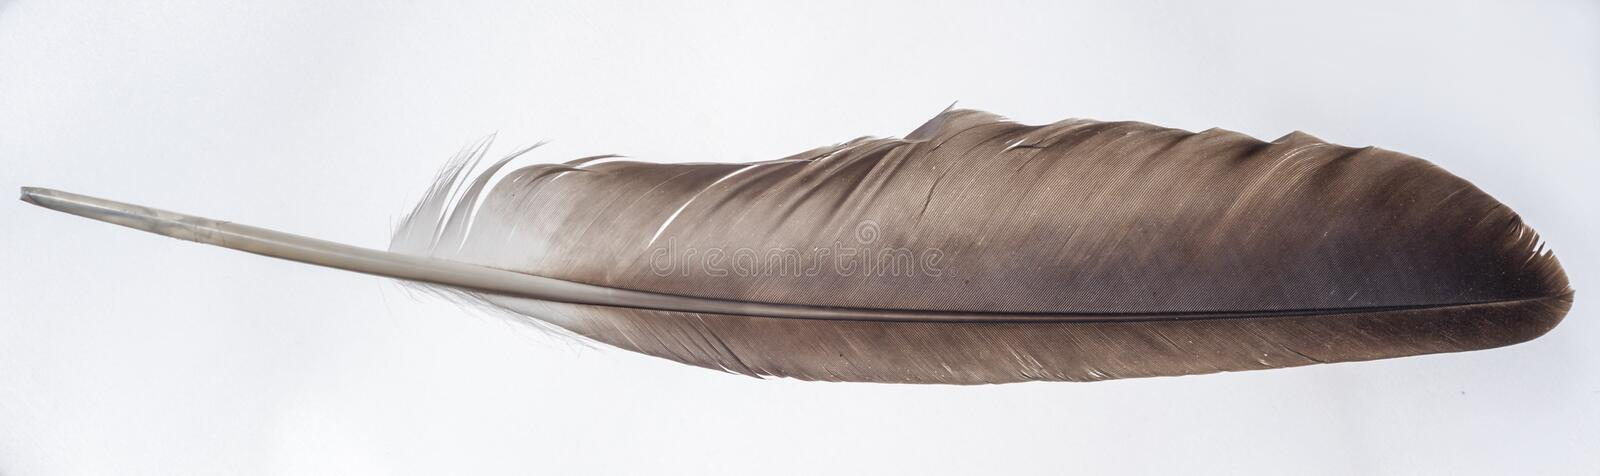 Eagle Wing Feather - Isolated on White. An bald eagle wing feather is portrayed on a light colored background royalty free stock photography